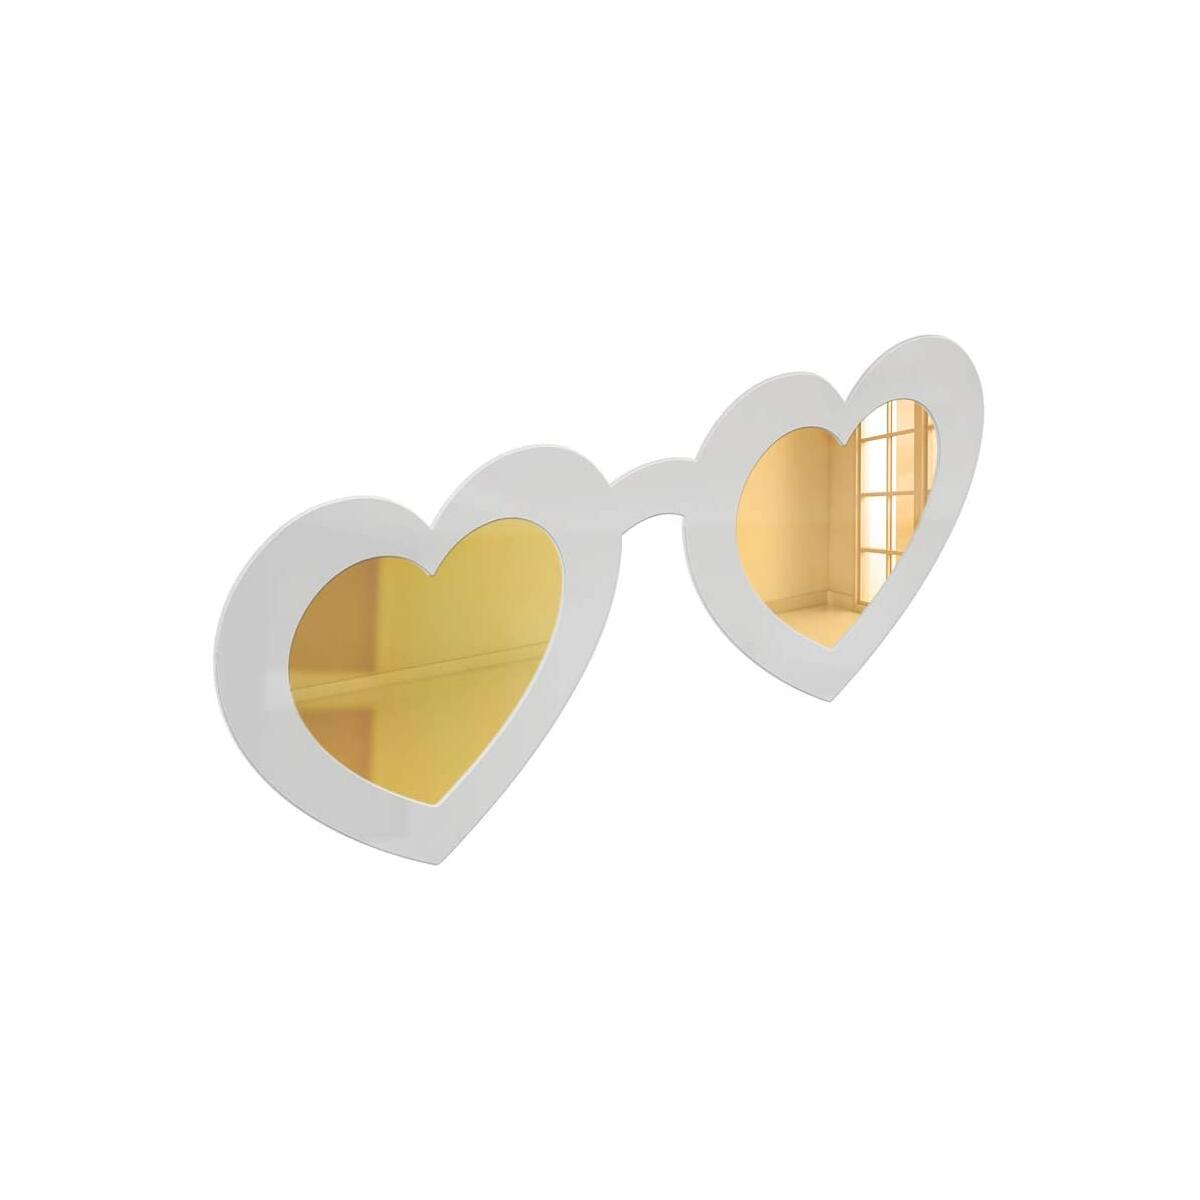 4ArtWorks - 3D Wall Art Heart Sunglasses with Mirror Lenses (Gold/White ONLY, 16x7x1) Trendy Home Decor Mirrors in 2 Sizes | Great for Living Rooms, Bedrooms and Modern Workspaces